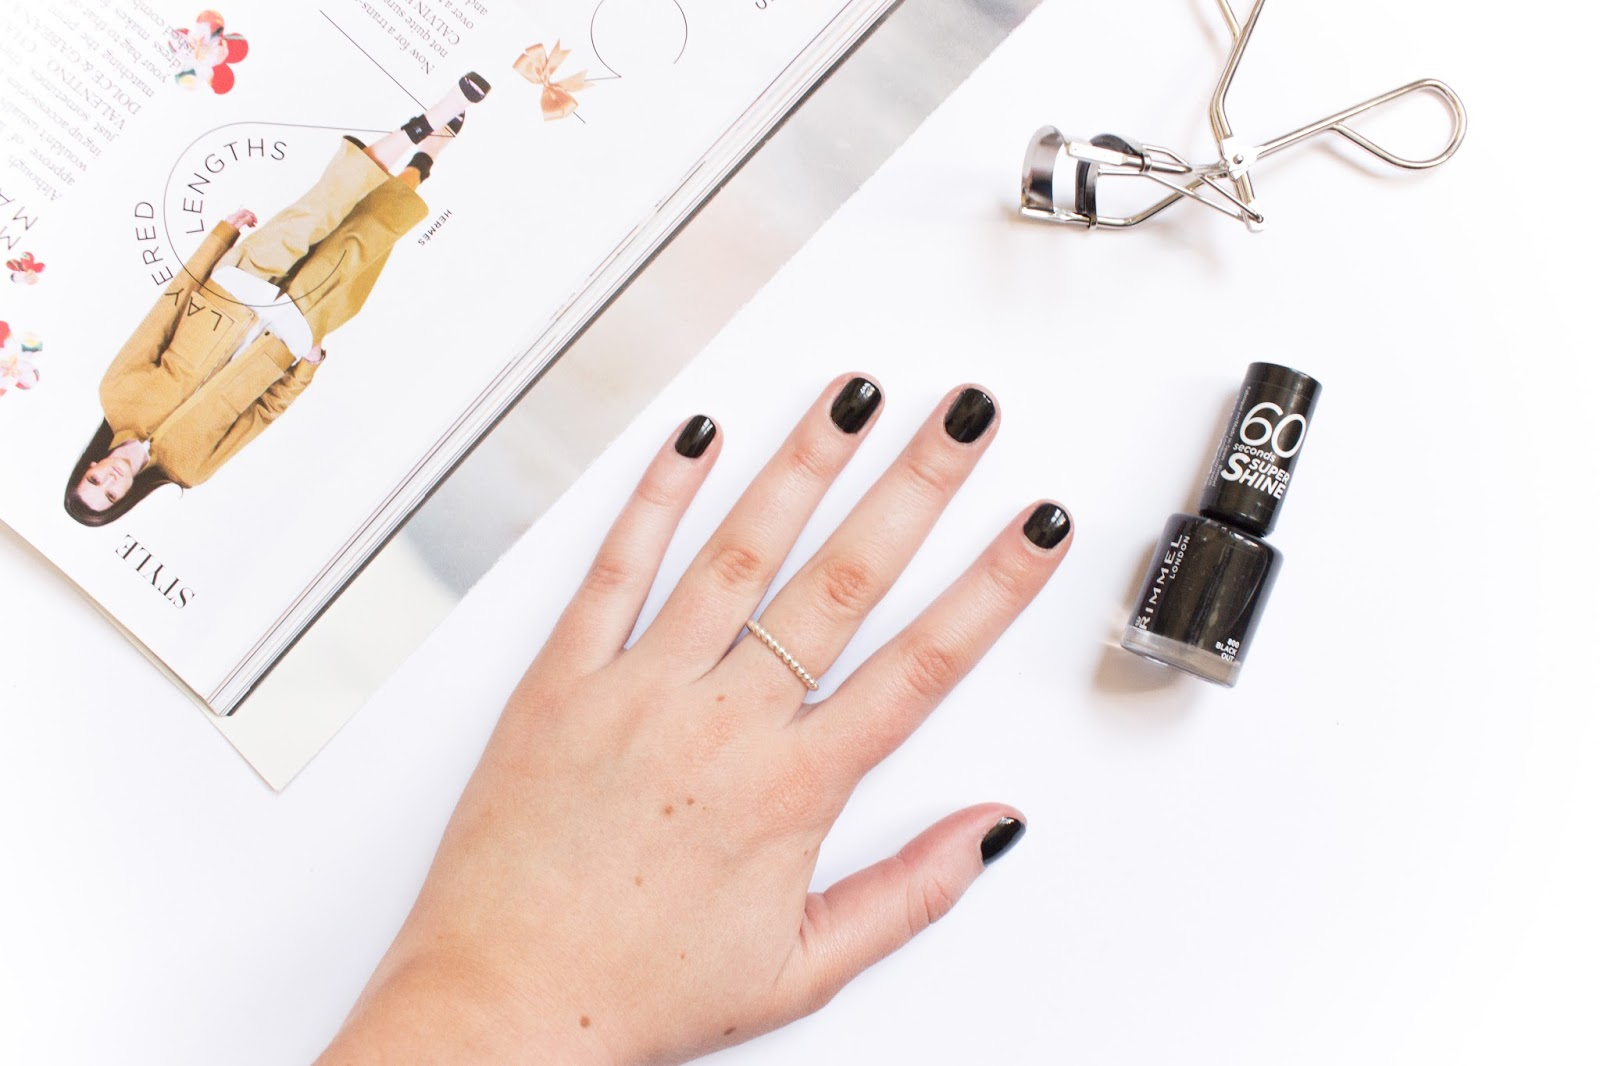 Rimmel 60 Seconds Super Shine Nail Polish in Black Out